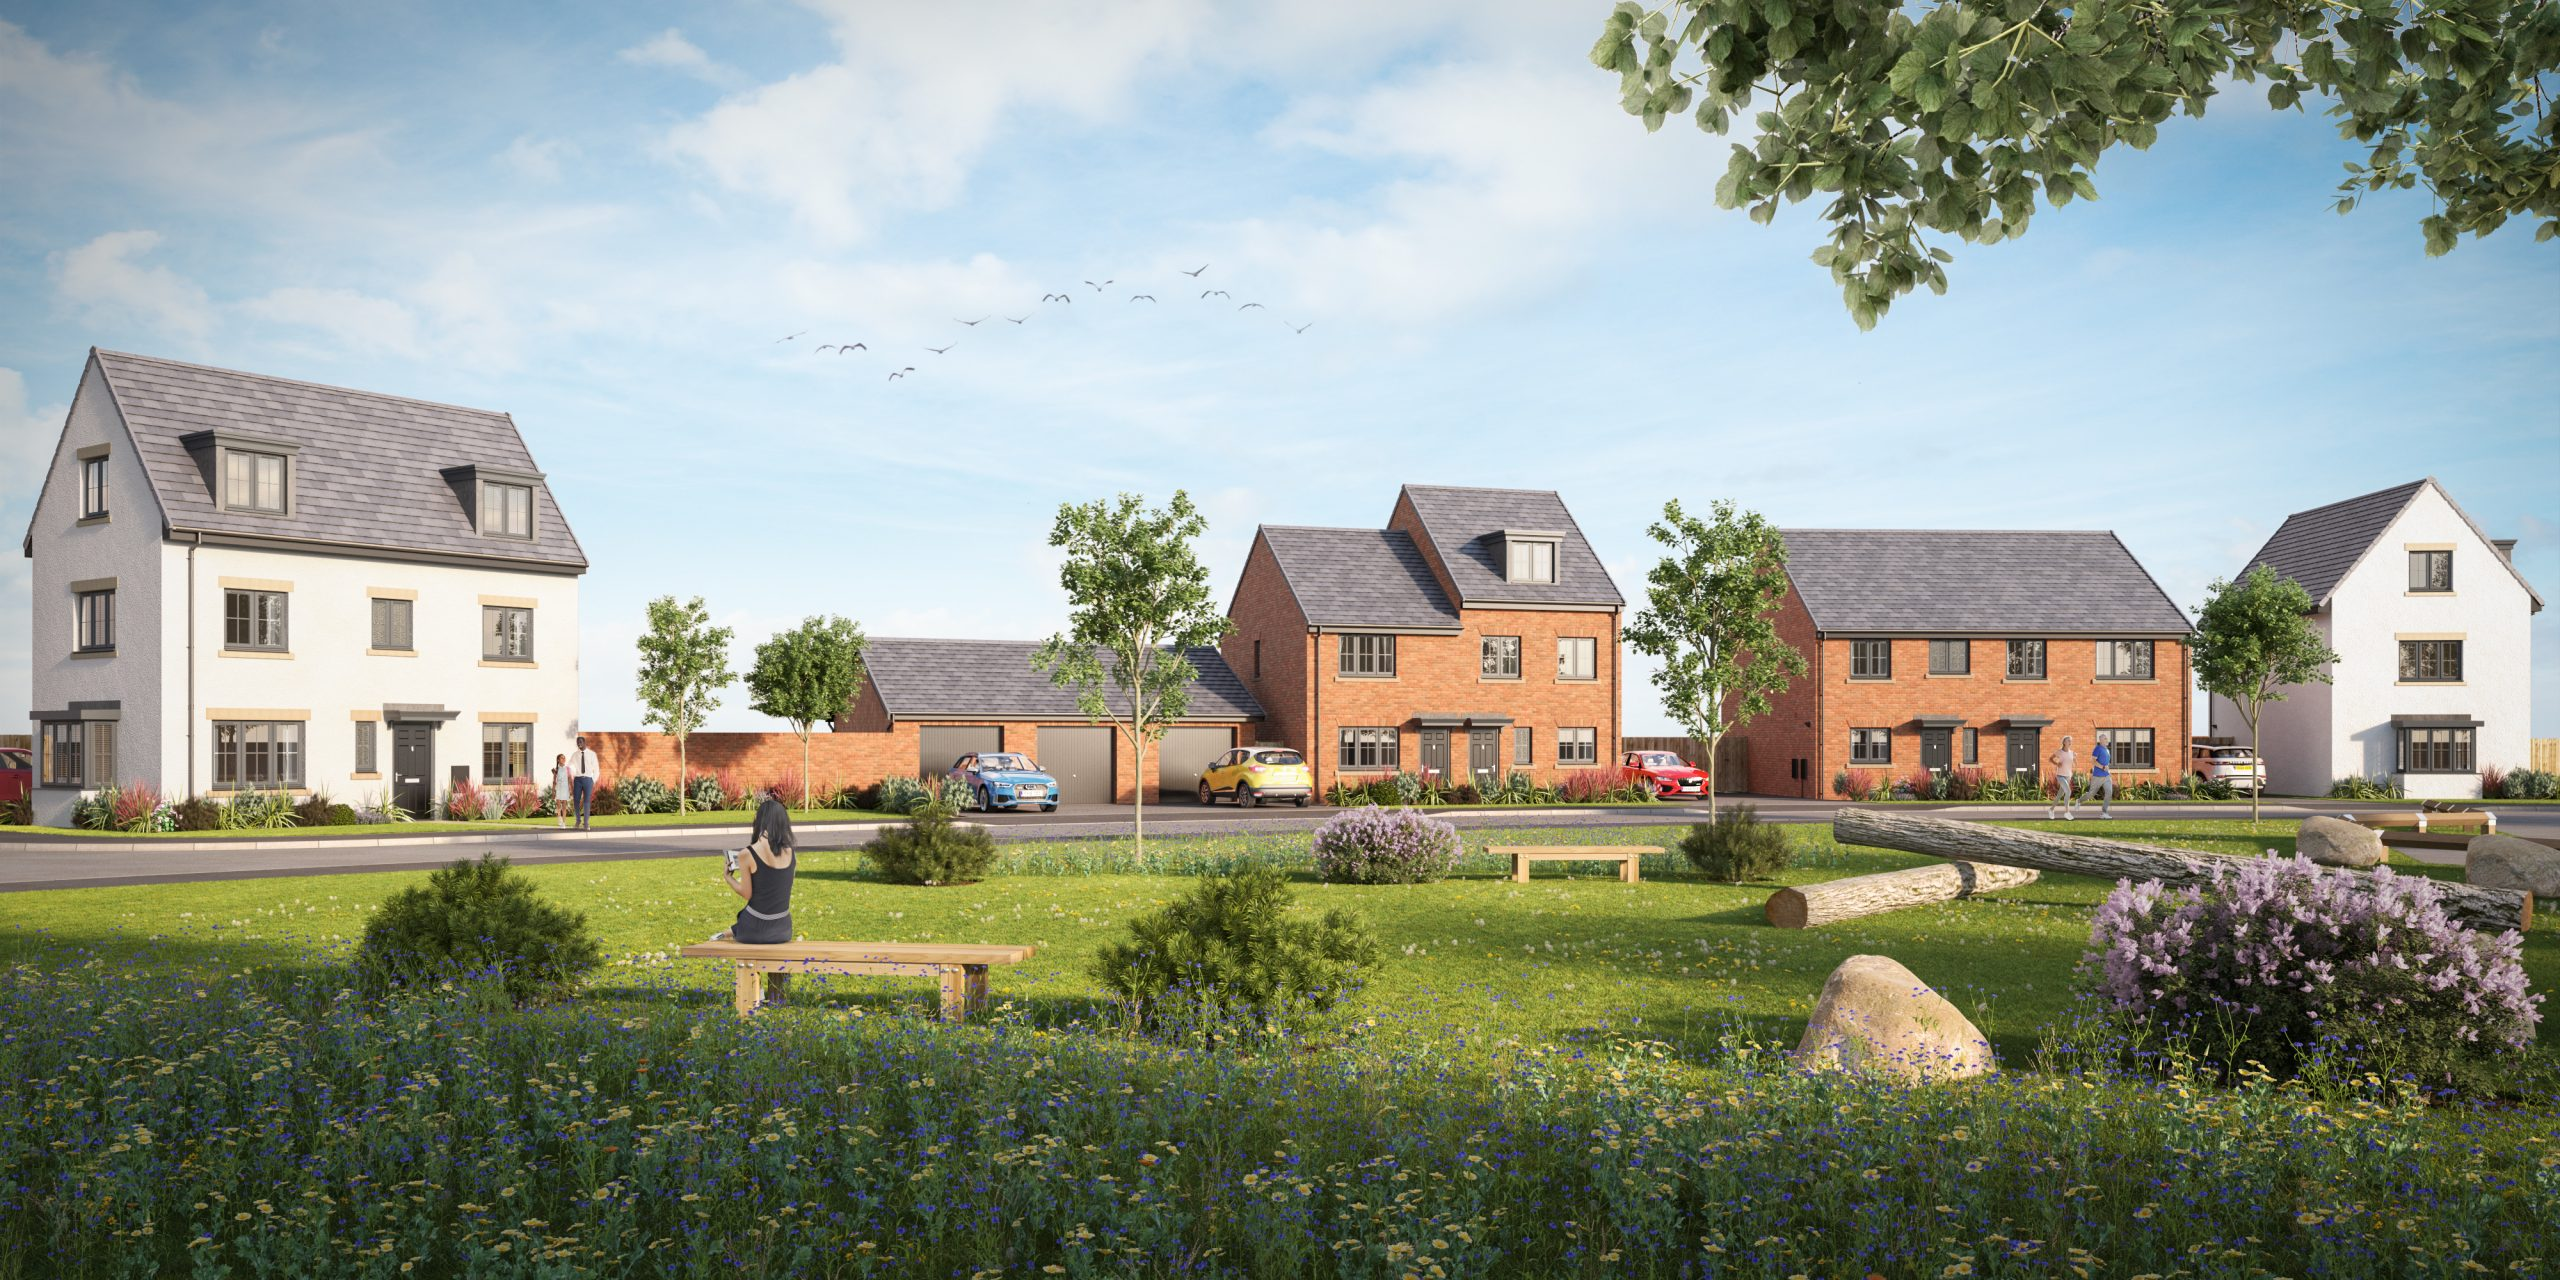 Keepmoat Homes Acquires Site to Build 360 Homes